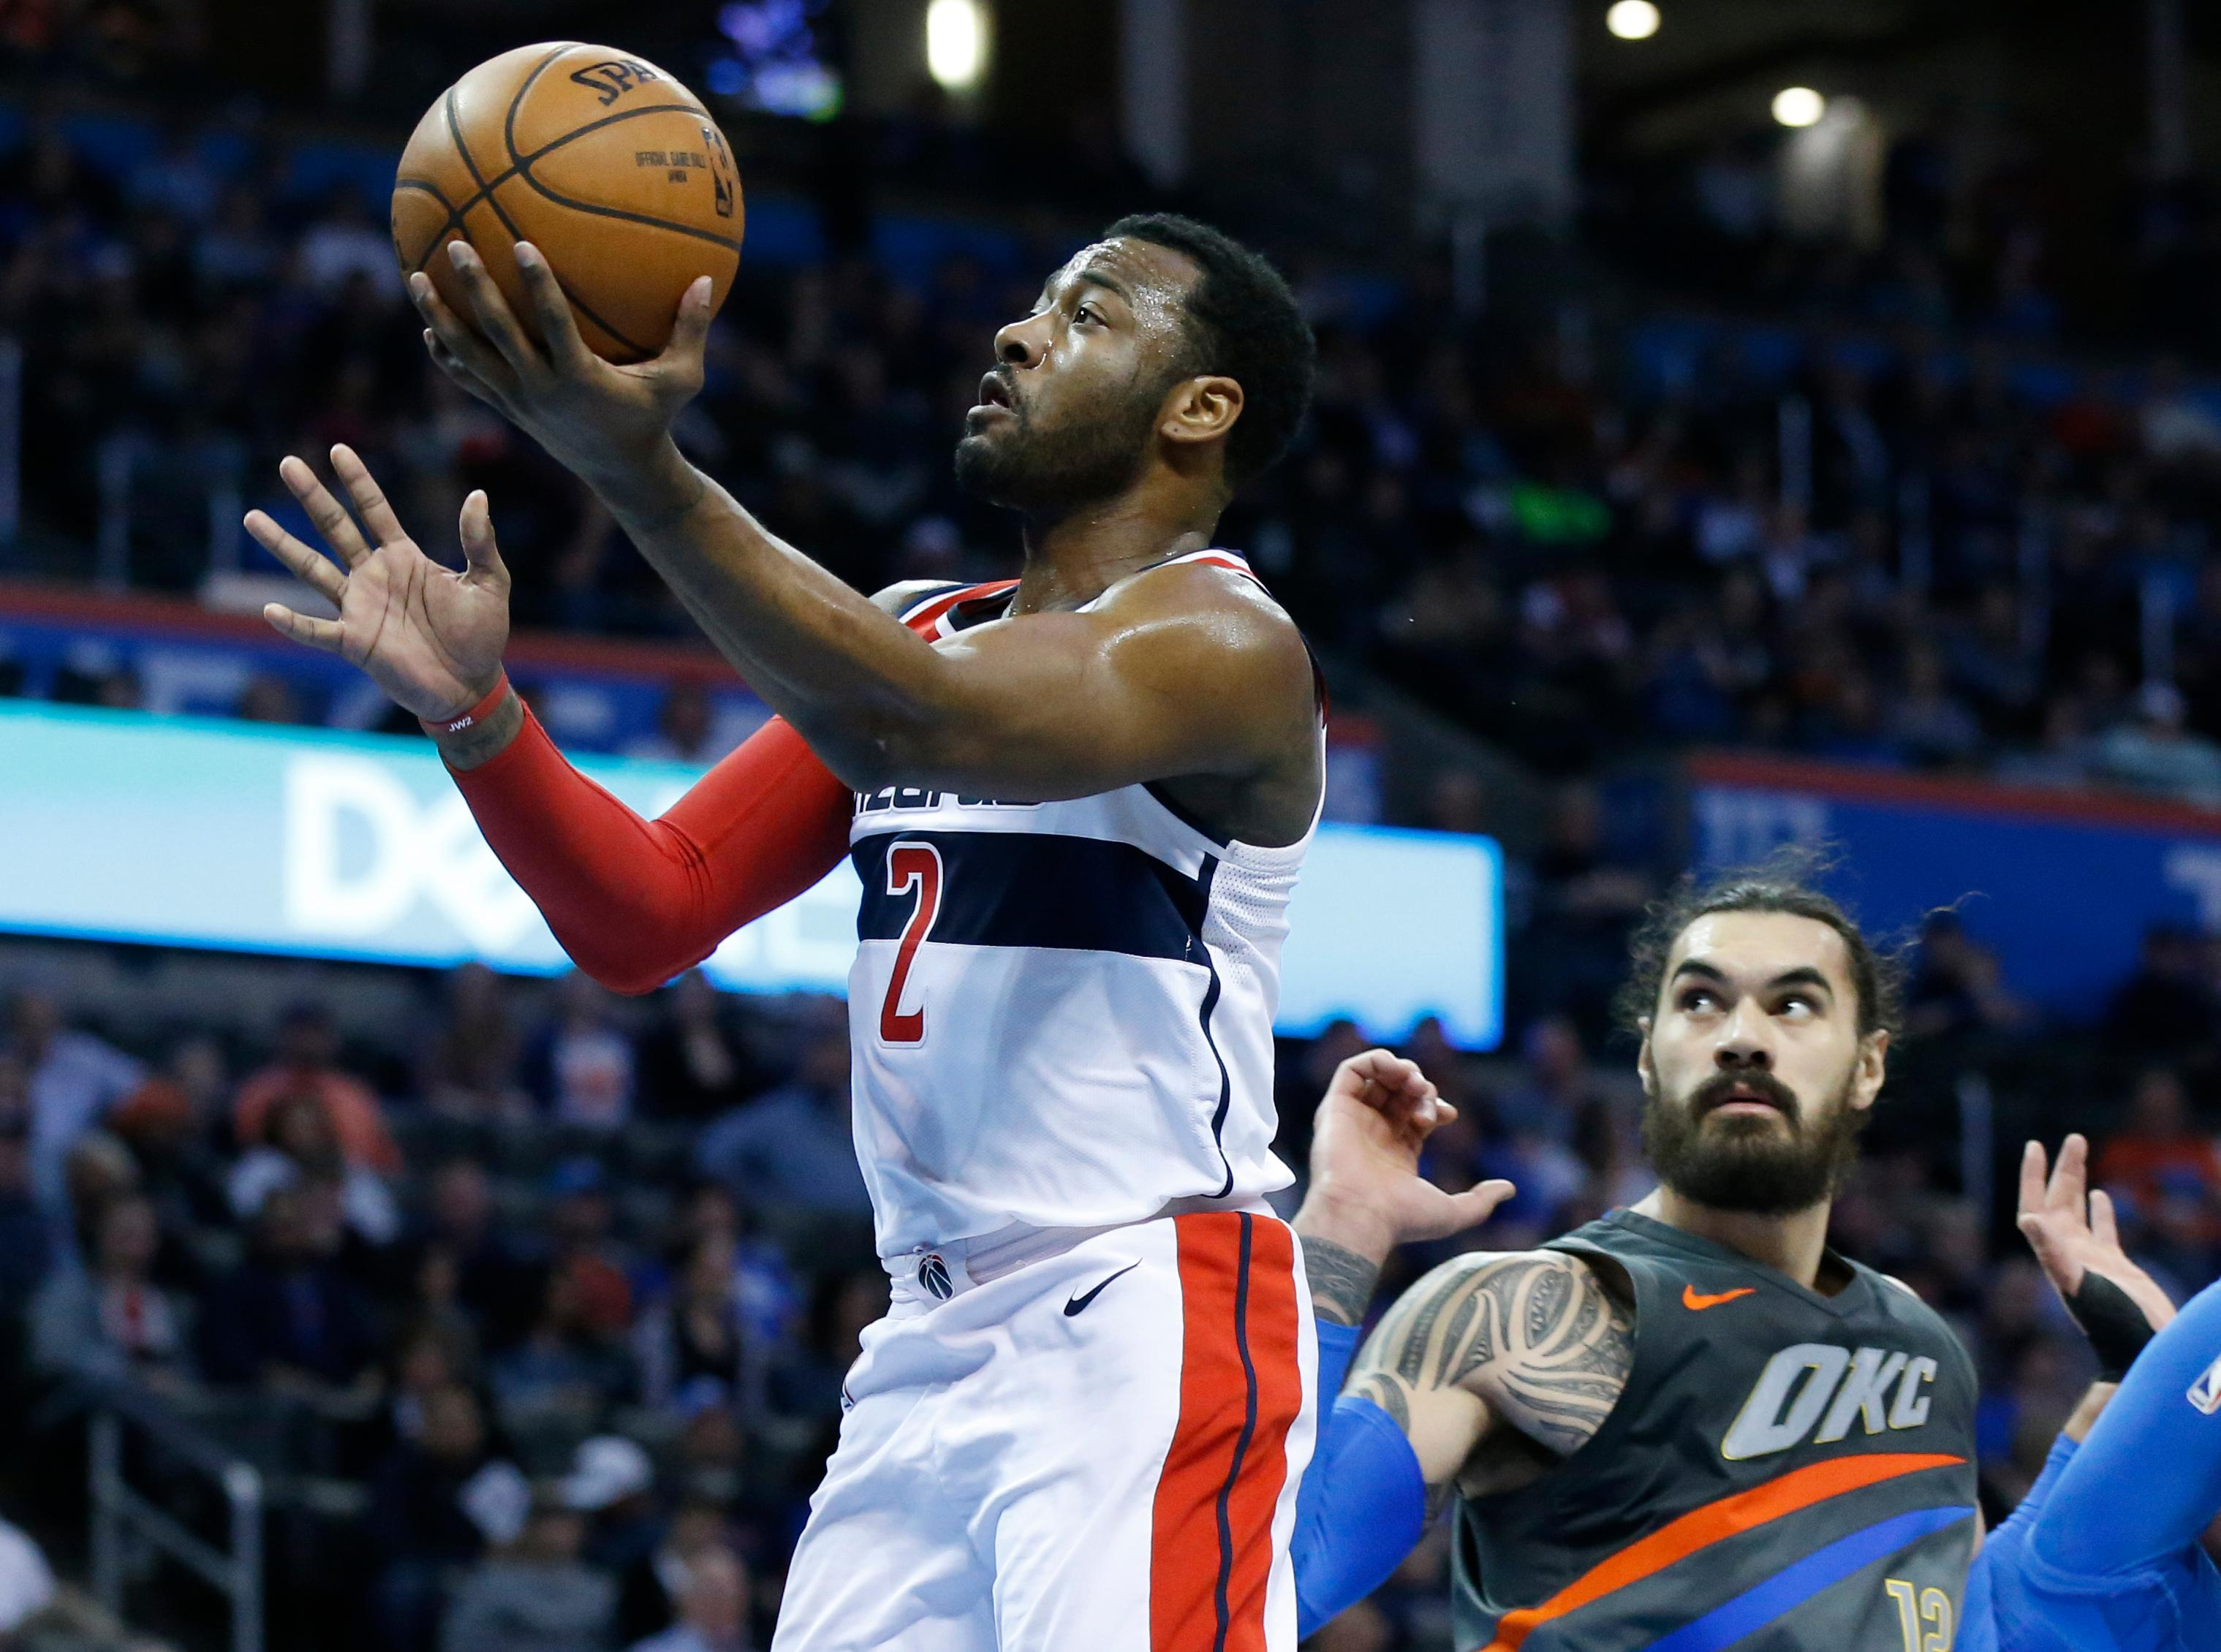 Washington Wizards guard John Wall (2) moves past Oklahoma City Thunder center Steven Adams, right, to shoot during the second quarter of an NBA basketball game in Oklahoma City, Thursday, Jan. 25, 2018. (AP Photo/Sue Ogrocki)